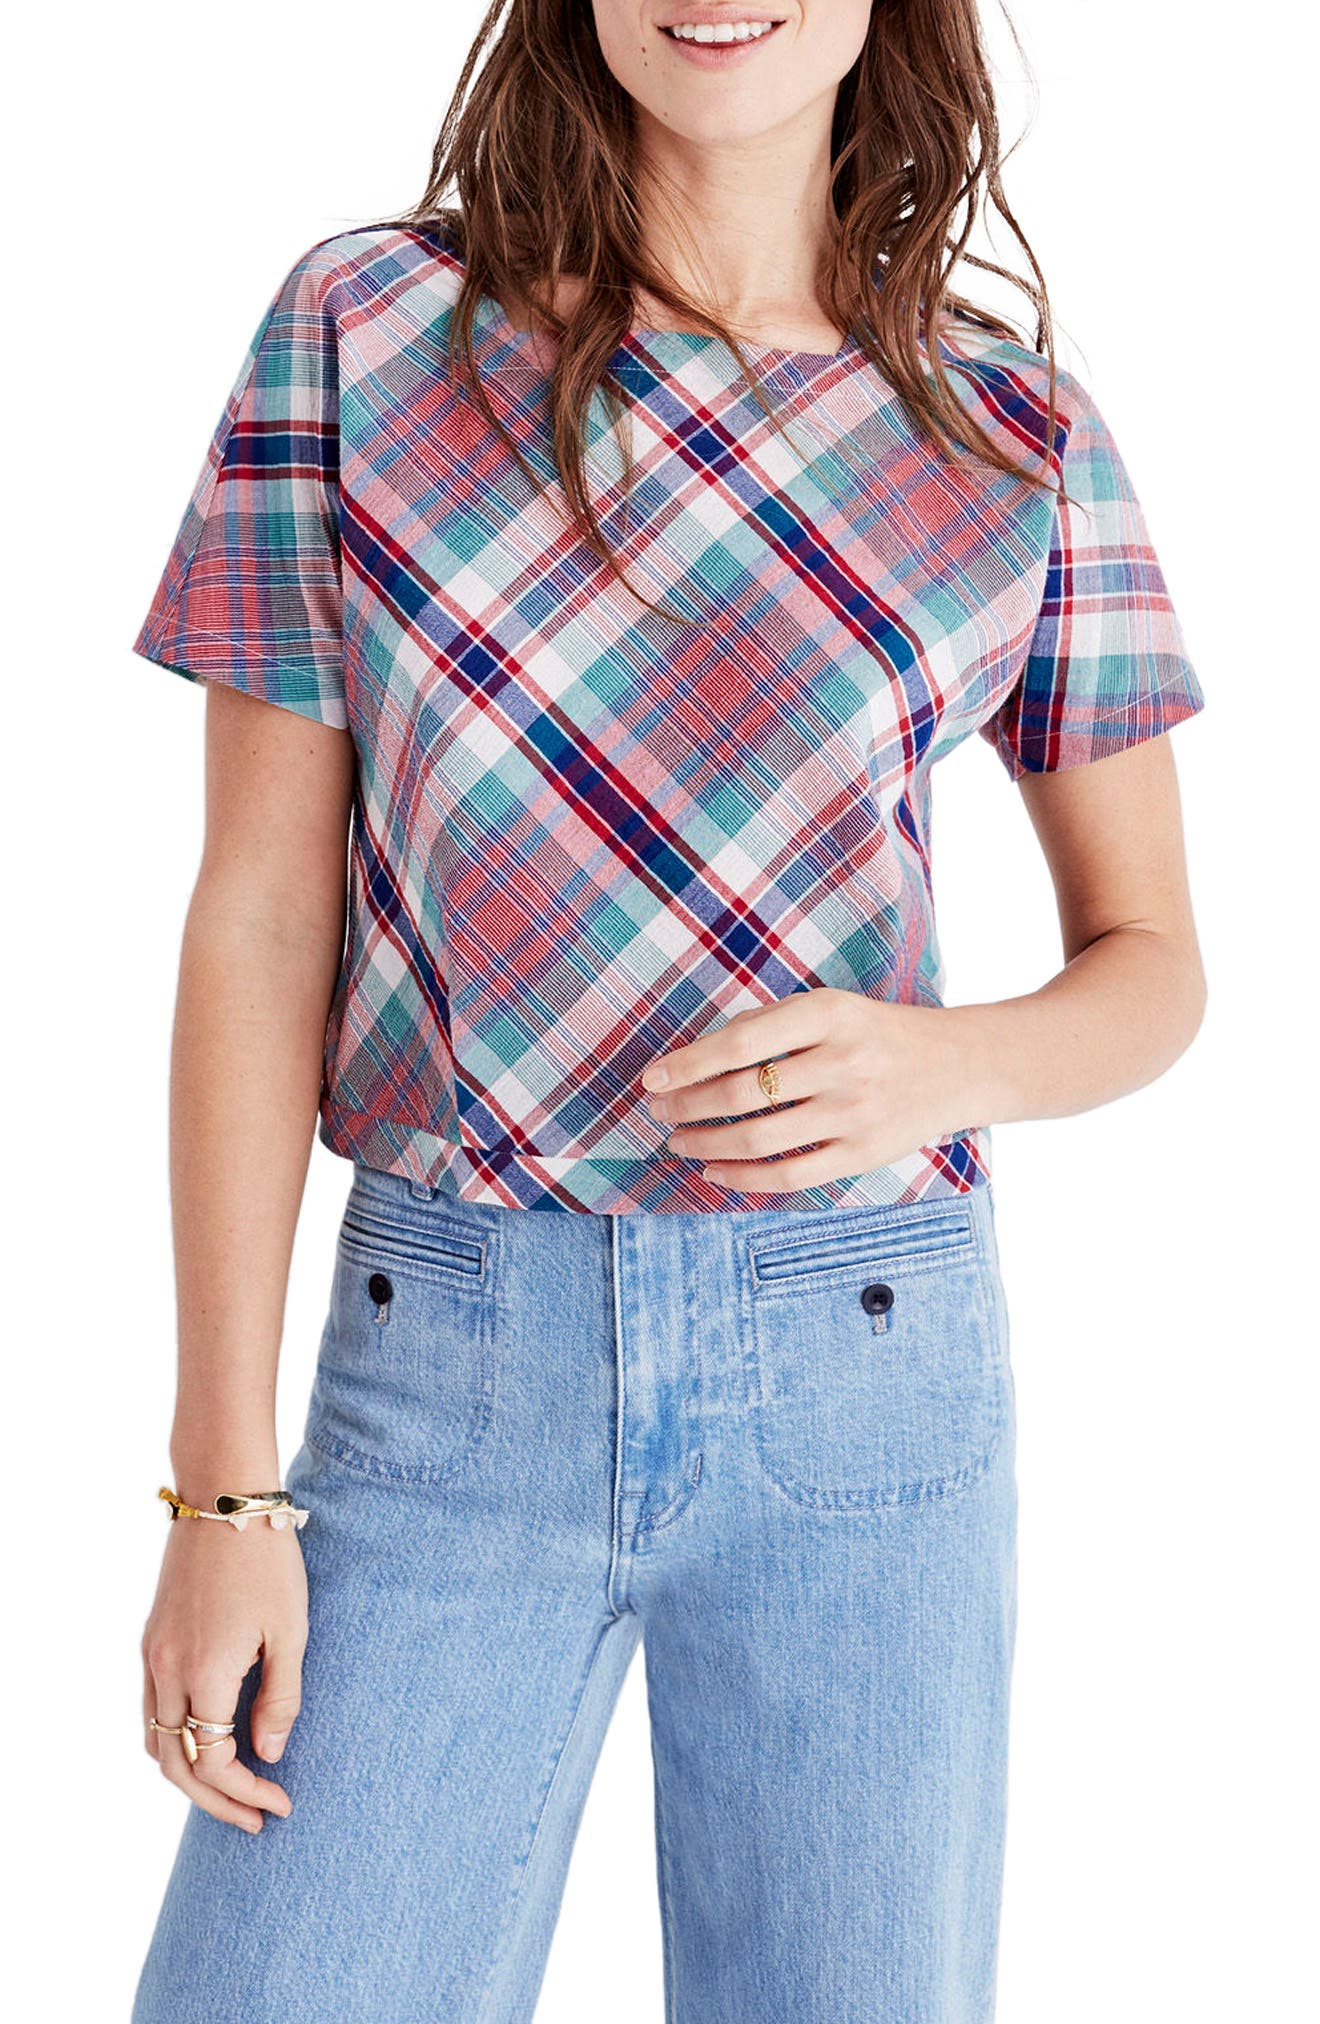 Main Image - Madewell Plaid Tie Back Top